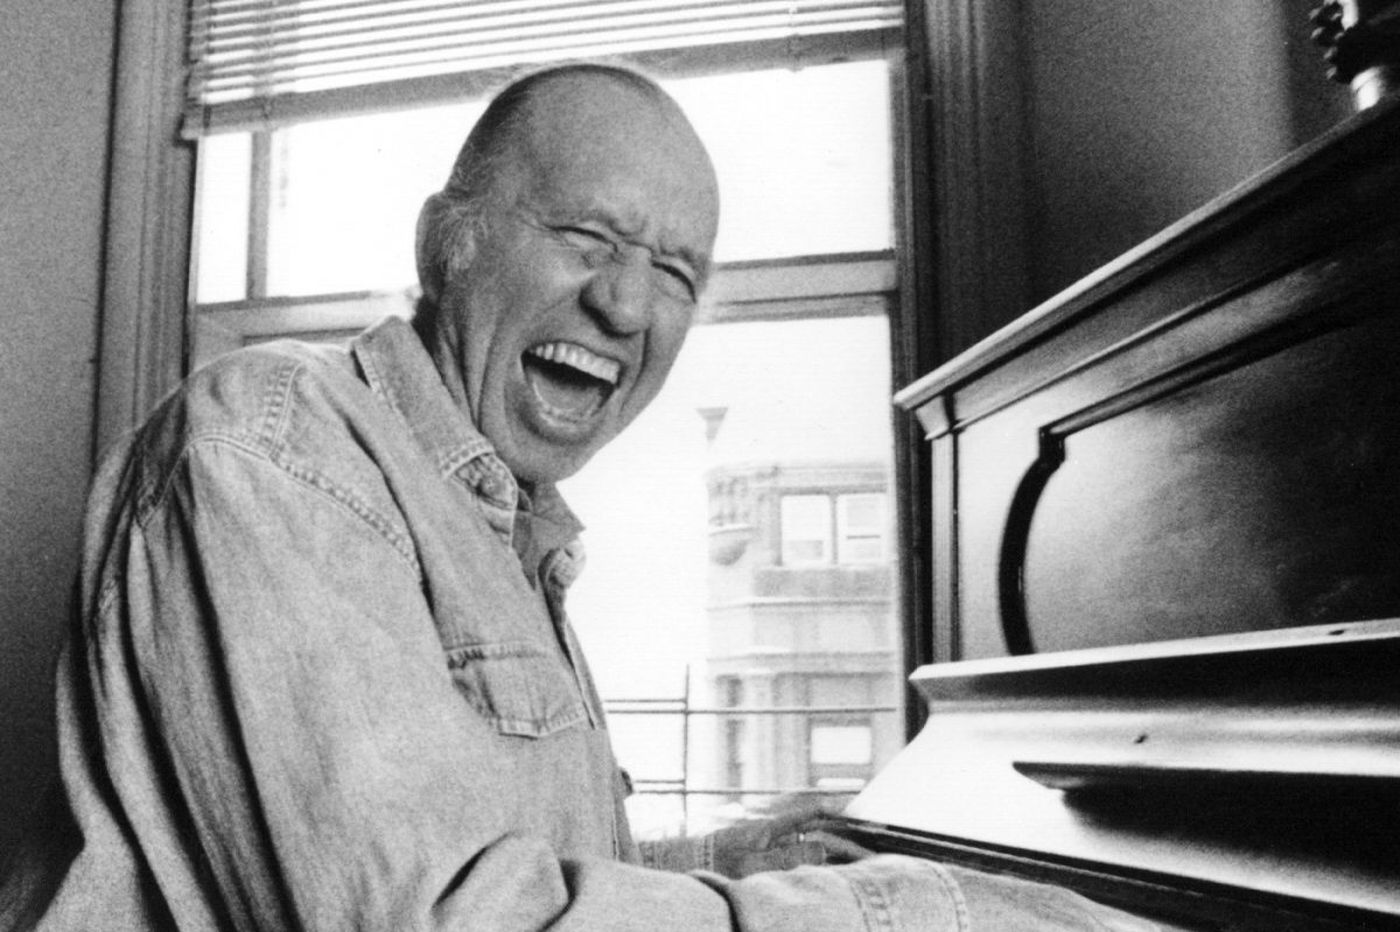 'Schoolhouse Rock' composer and performer Bob Dorough dies in Pa. home at 94